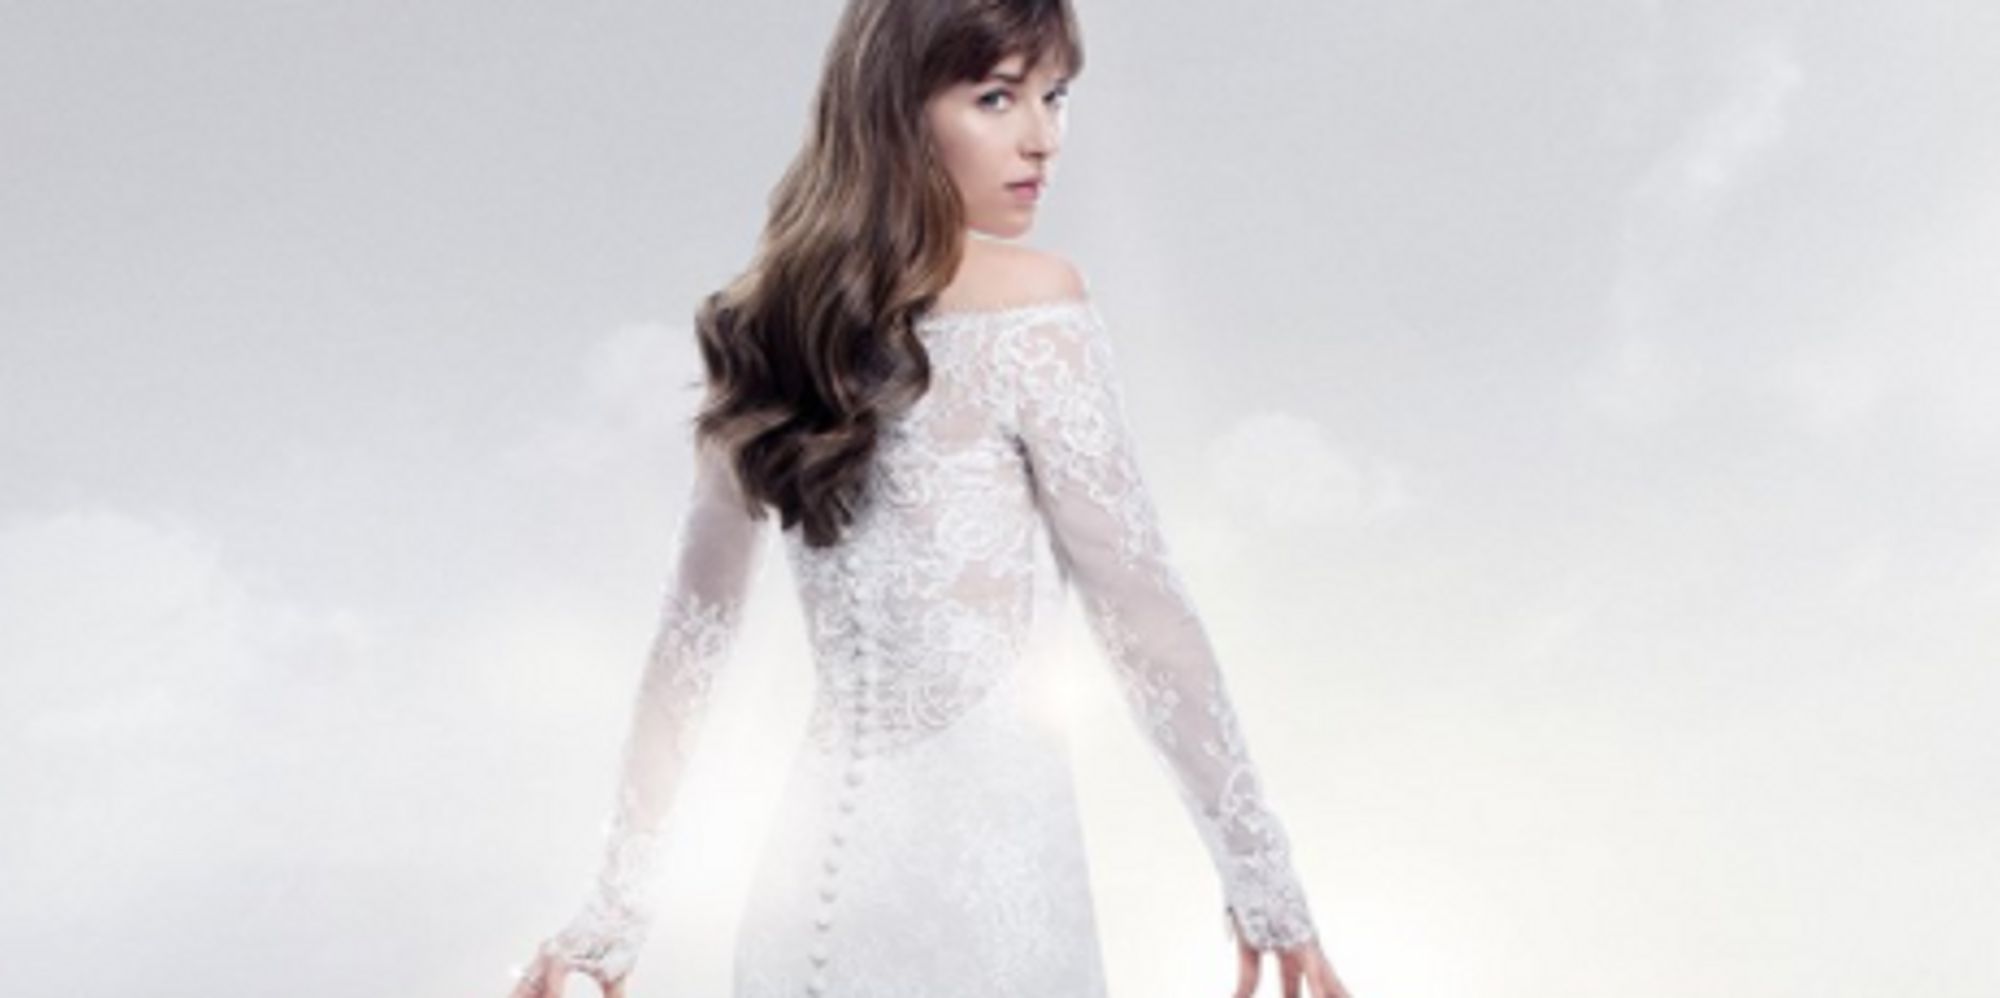 Mrs Grey's Wedding Dress From 'Fifty Shades Freed' Is